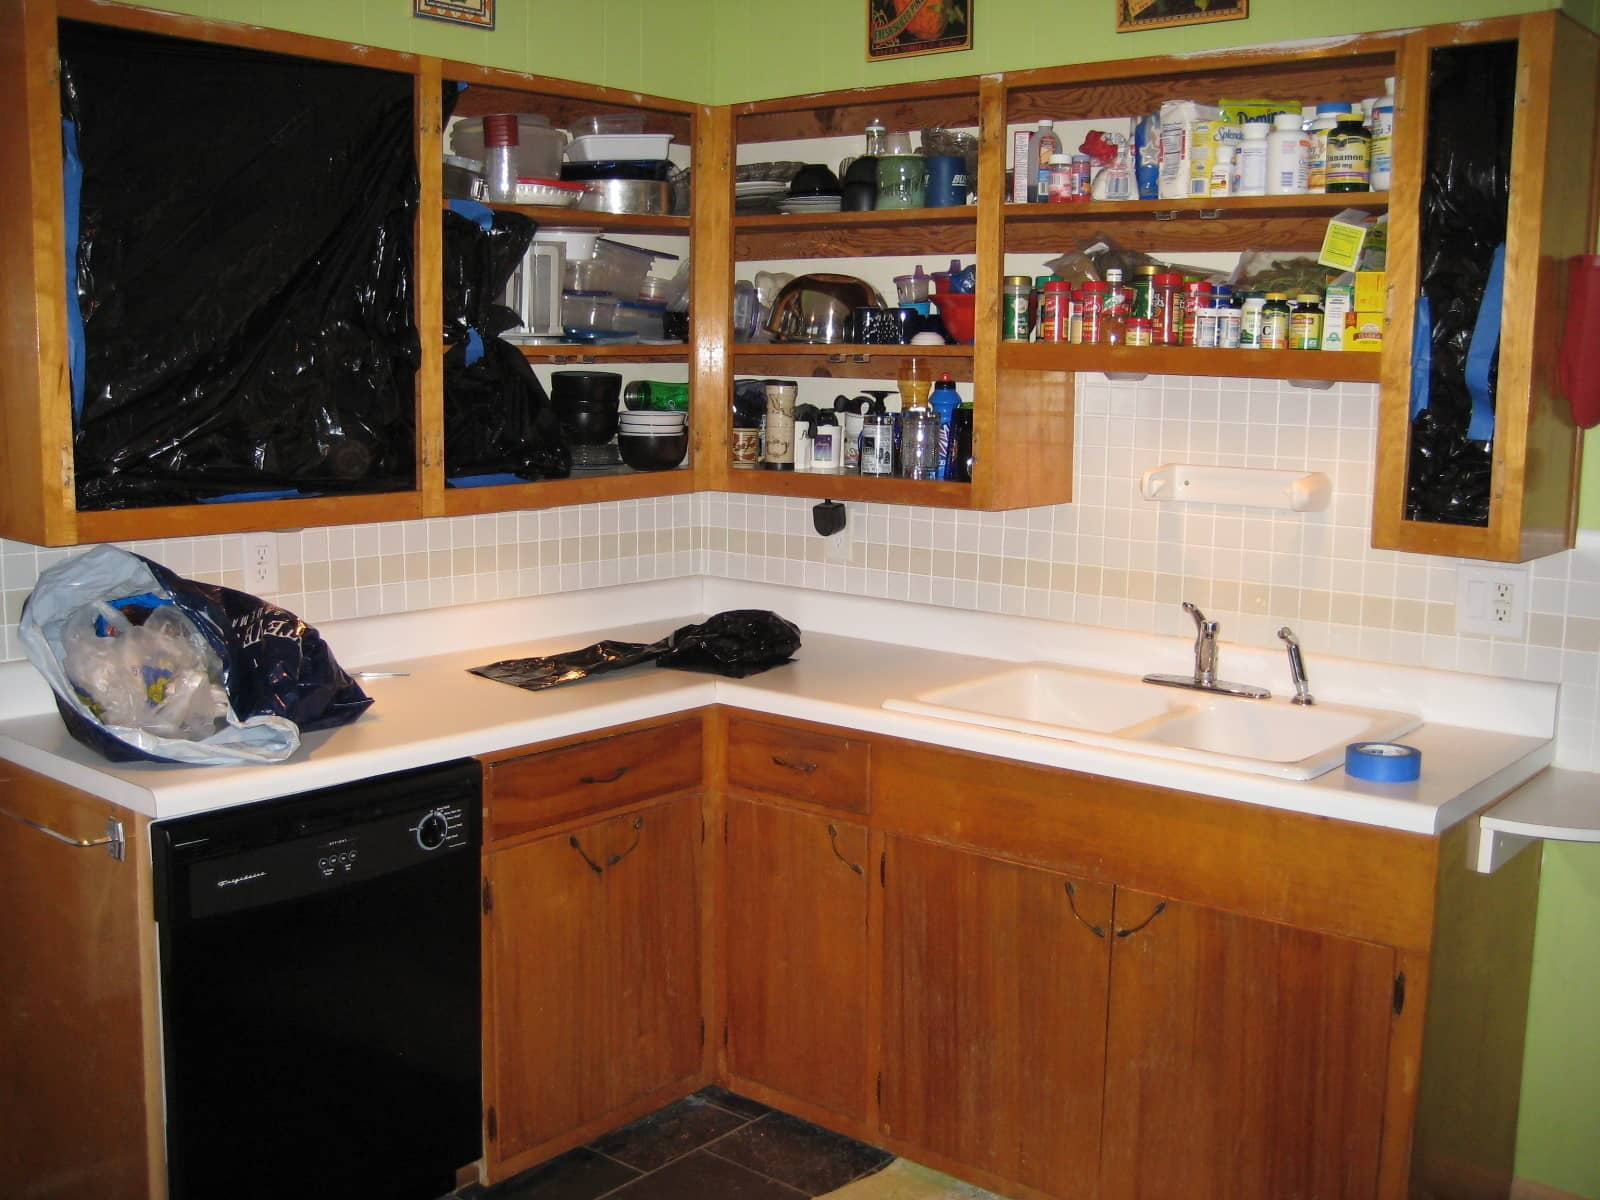 How To Refinish Flaky Cabinets From the 60s Jessi's February Jumpstart Project 2009: gallery image 3